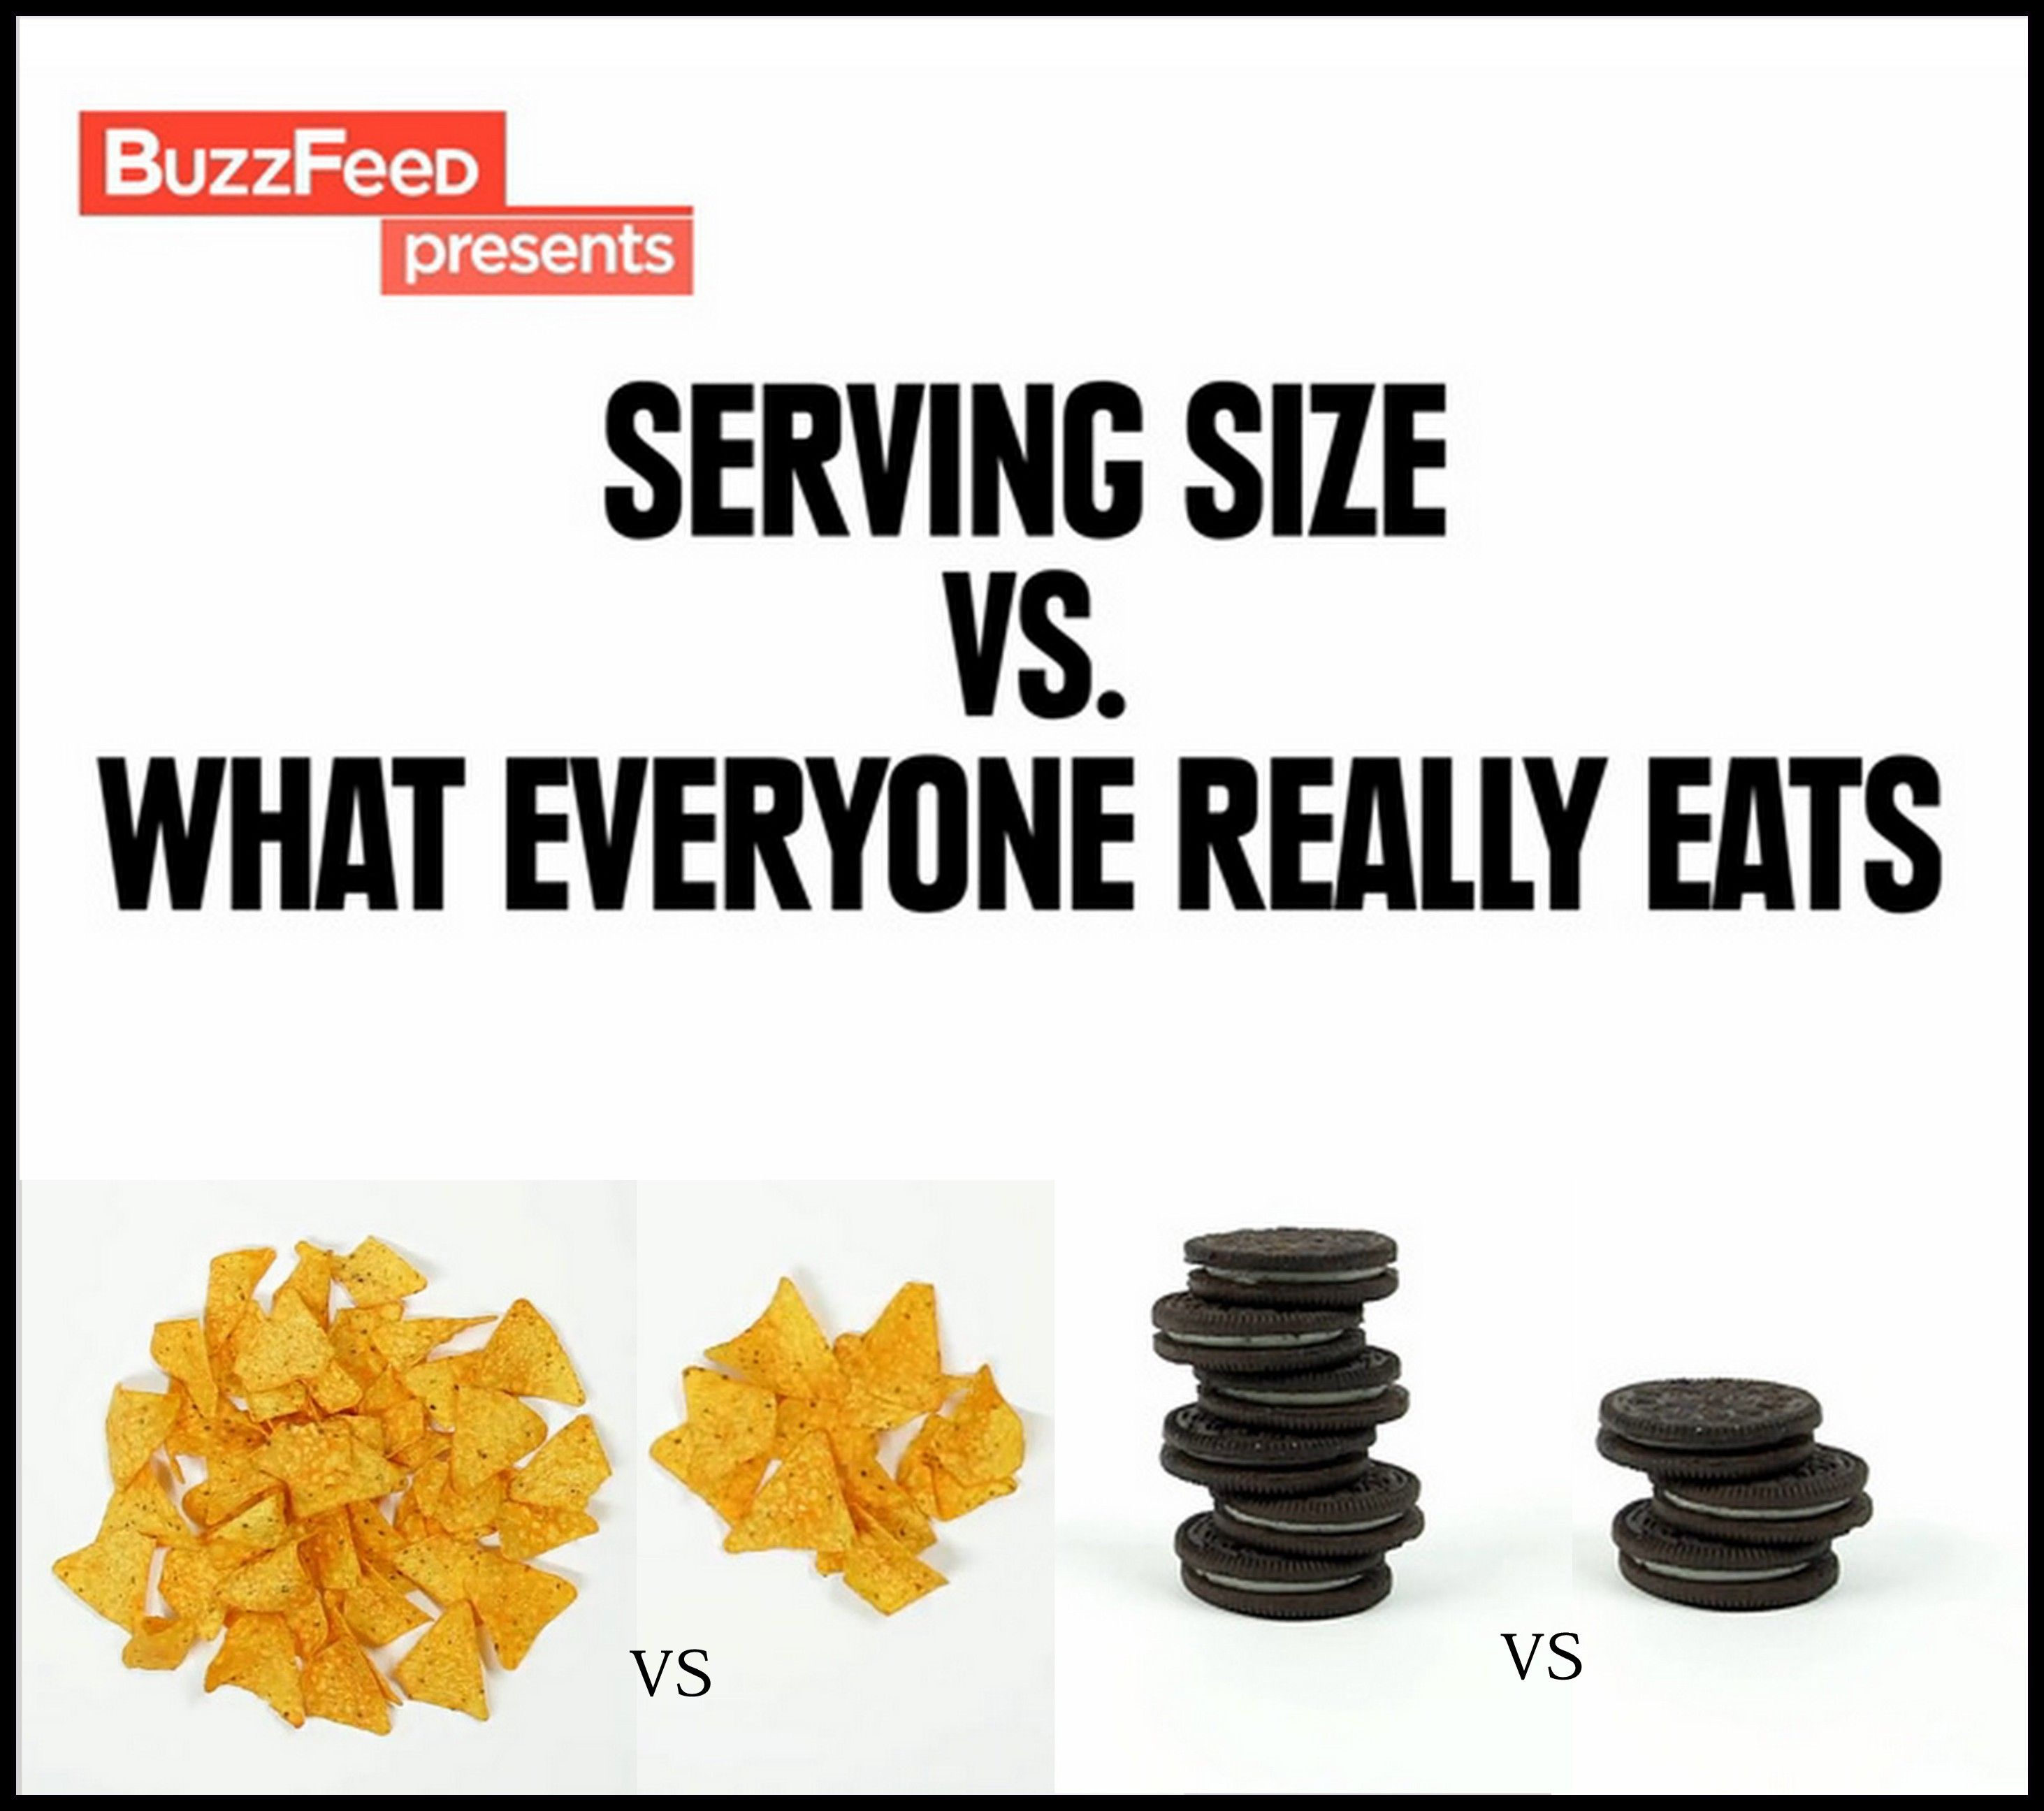 Serving Sizes Are Not Ridiculous They Are Meant To Be A Guide To Help Control Food Portions The Intake Of Certain Nutrients And Keep Track Of Calories